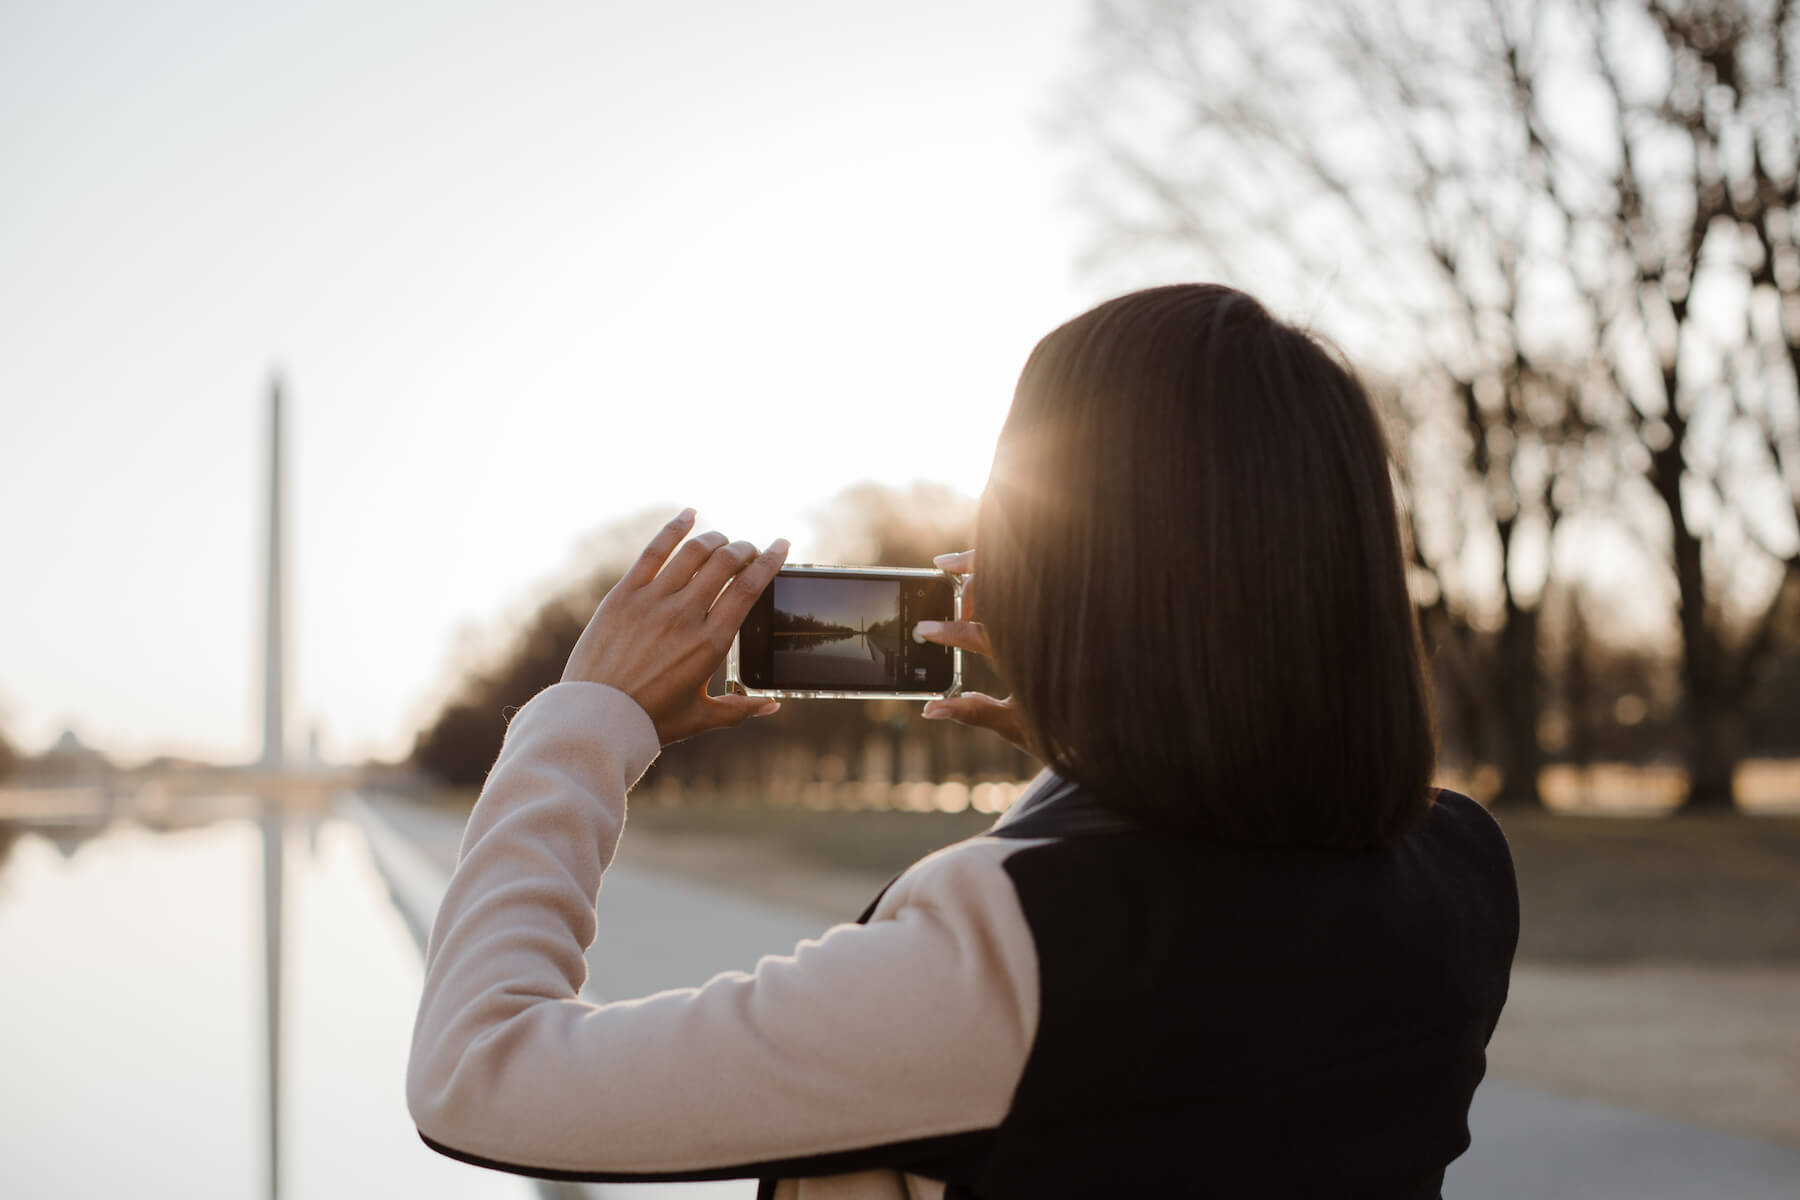 A woman on her iPhone taking photos and the best iPhone photography tips